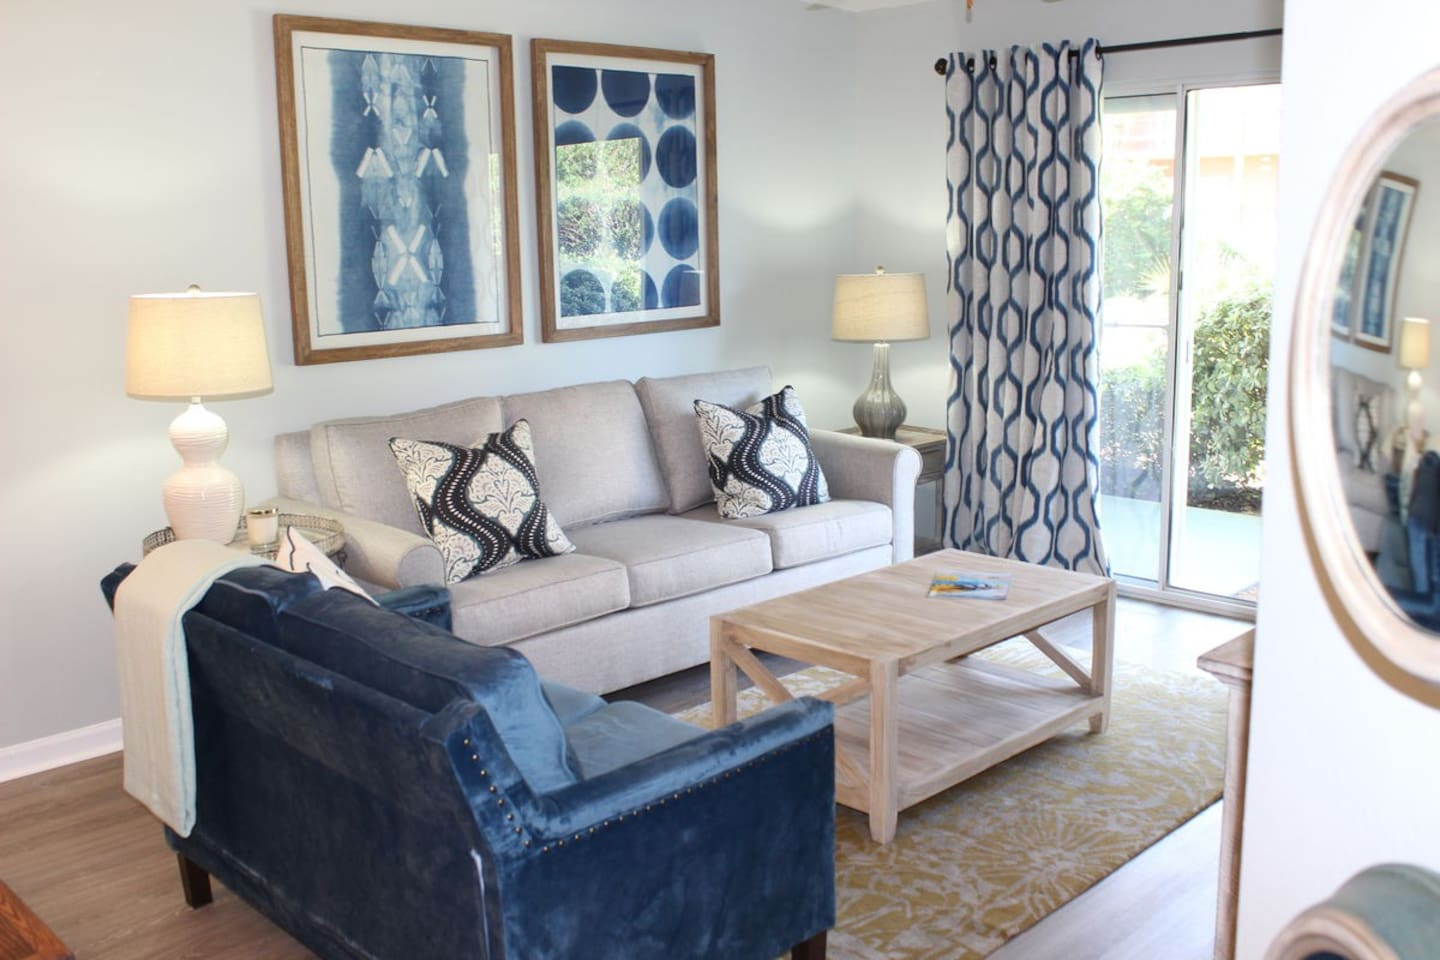 Beautifully decorated open concept living area with doors leading out to patio.